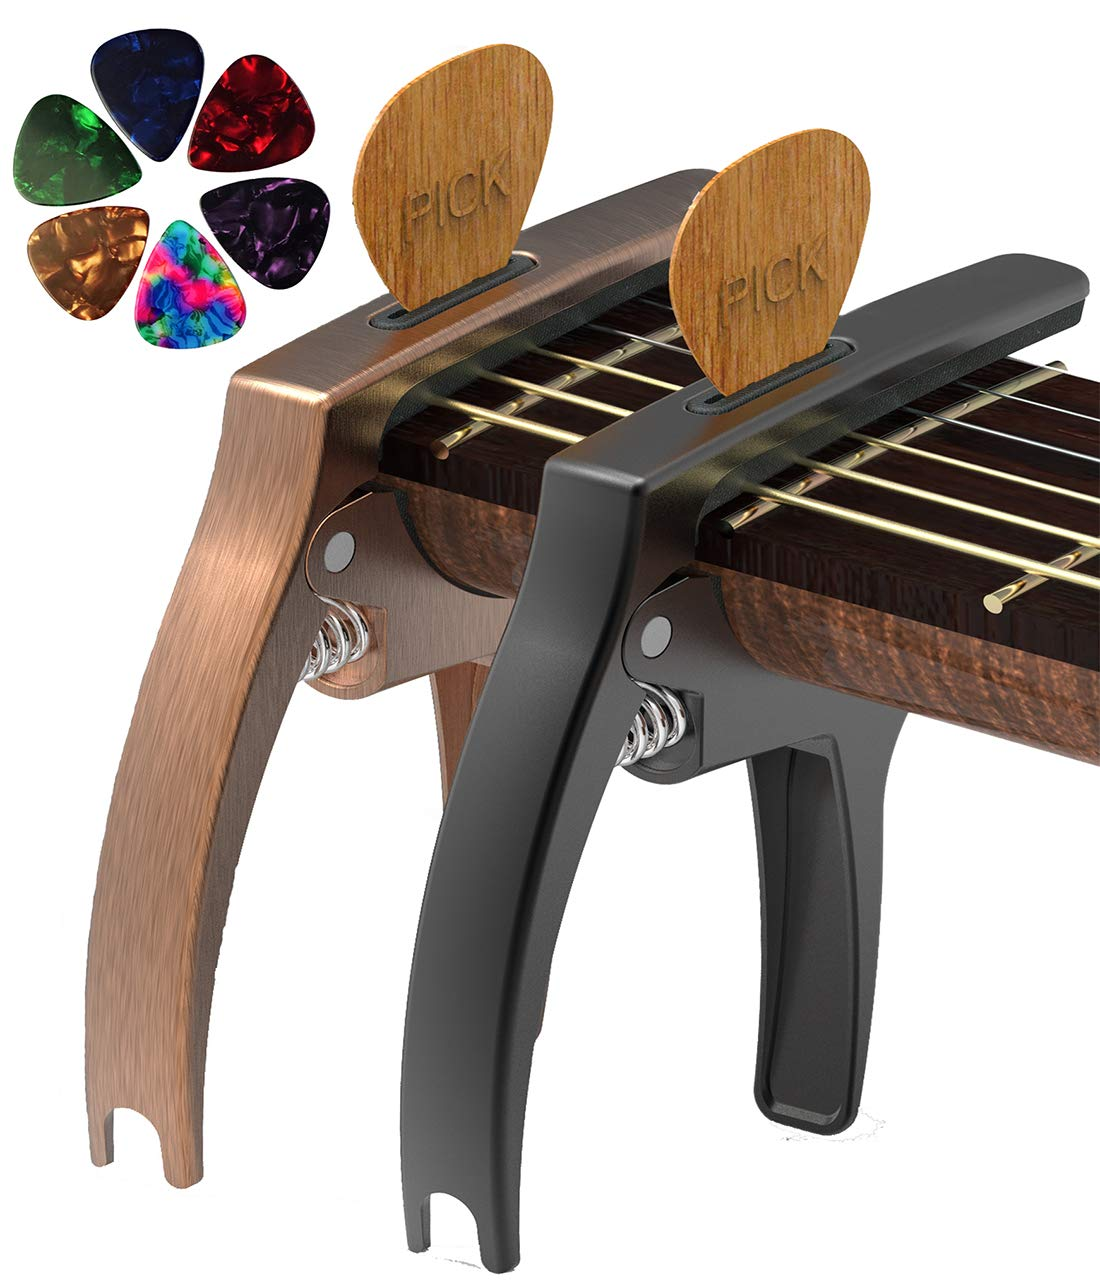 Showing the Bronze & Black Versions of The Tanmus 3 In 1 Zinc Metal Capo